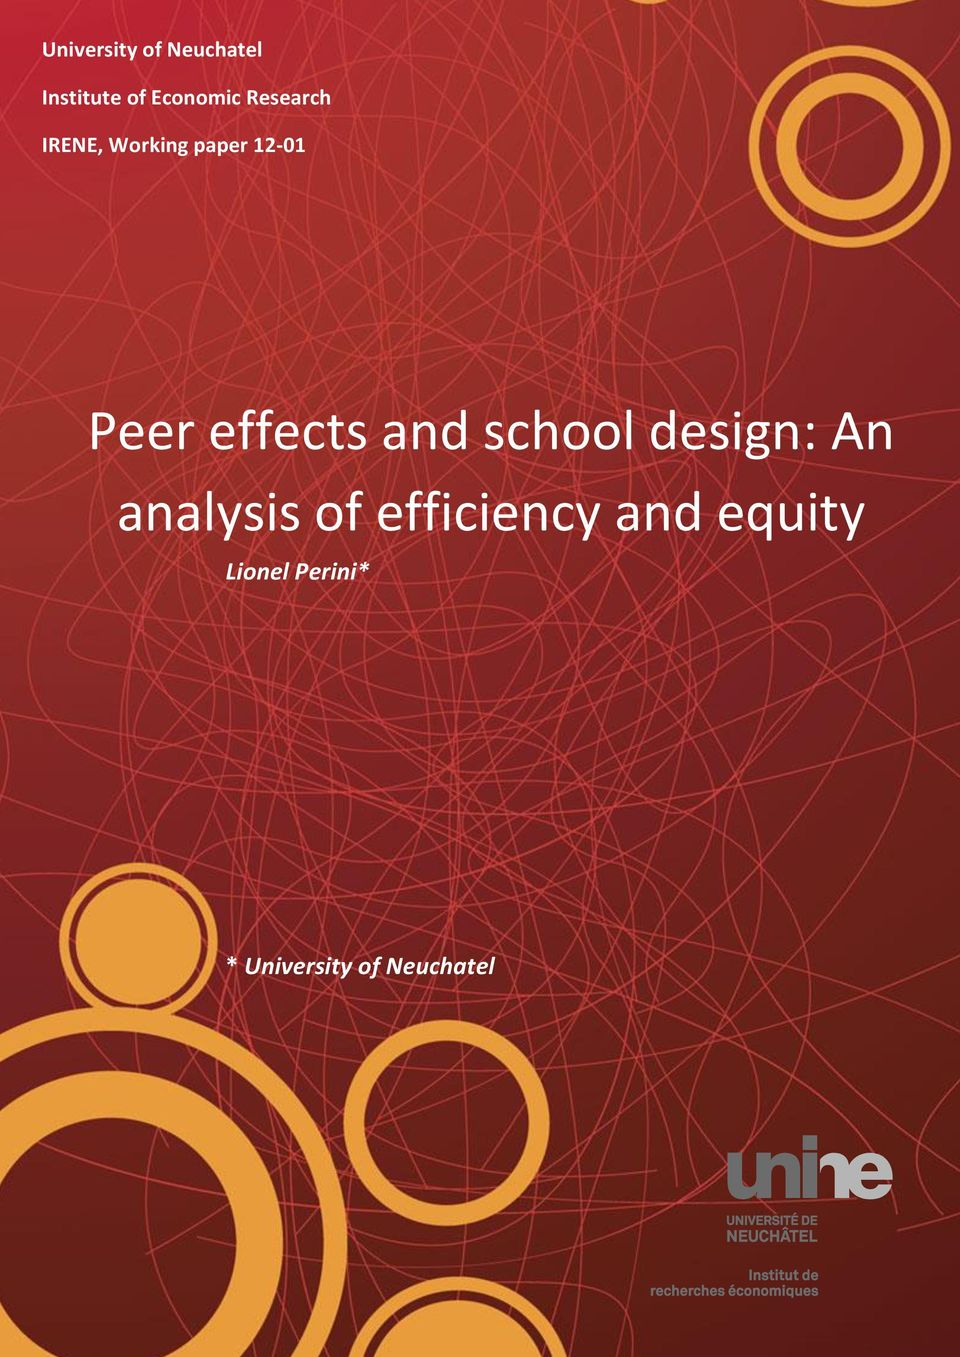 effects and school design: An analysis of